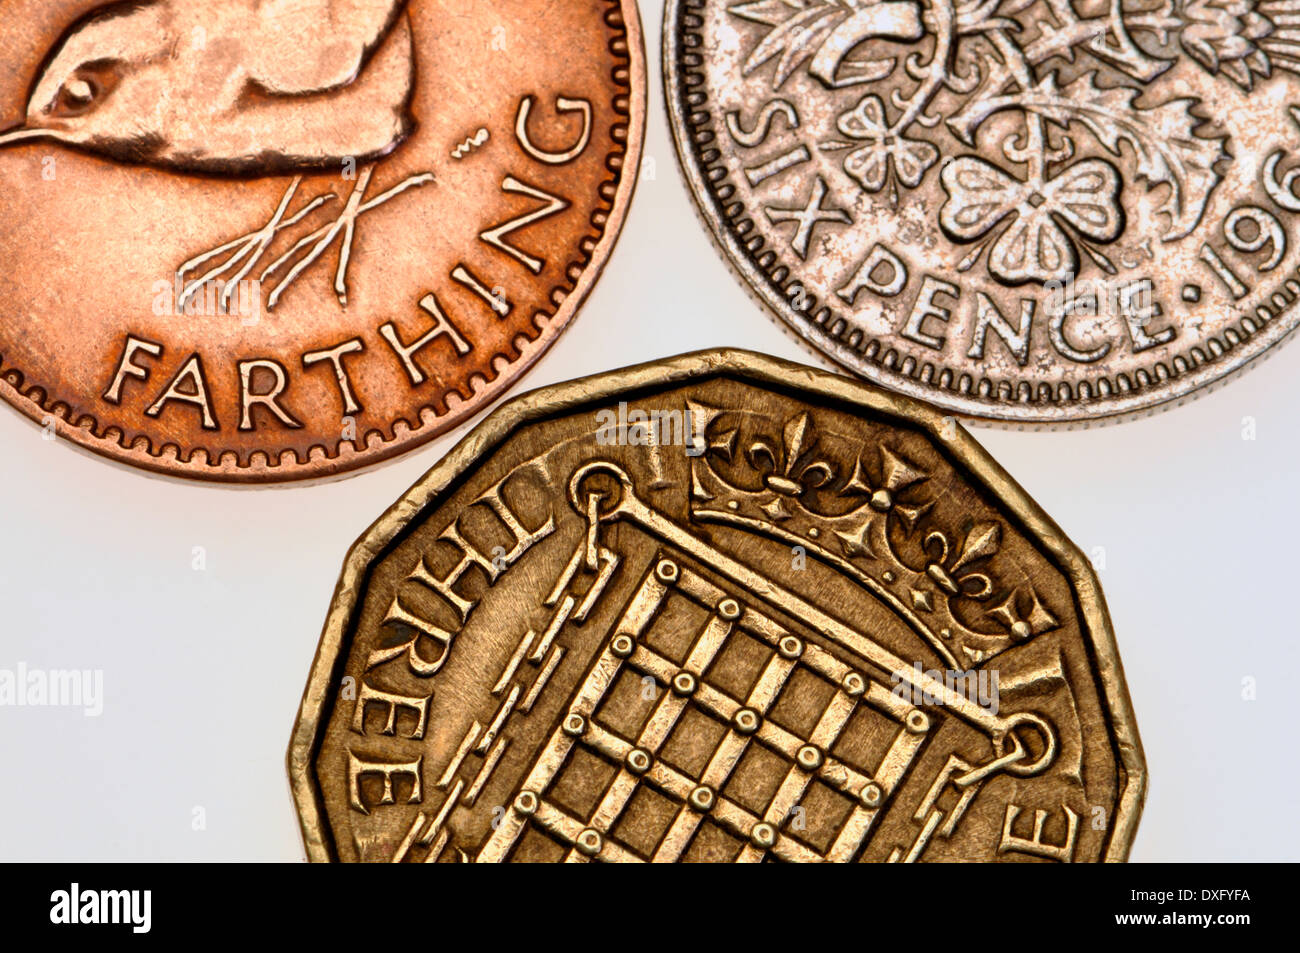 Pre-decimal British coins - farthing, thruppeny bit and sixpence Stock Photo